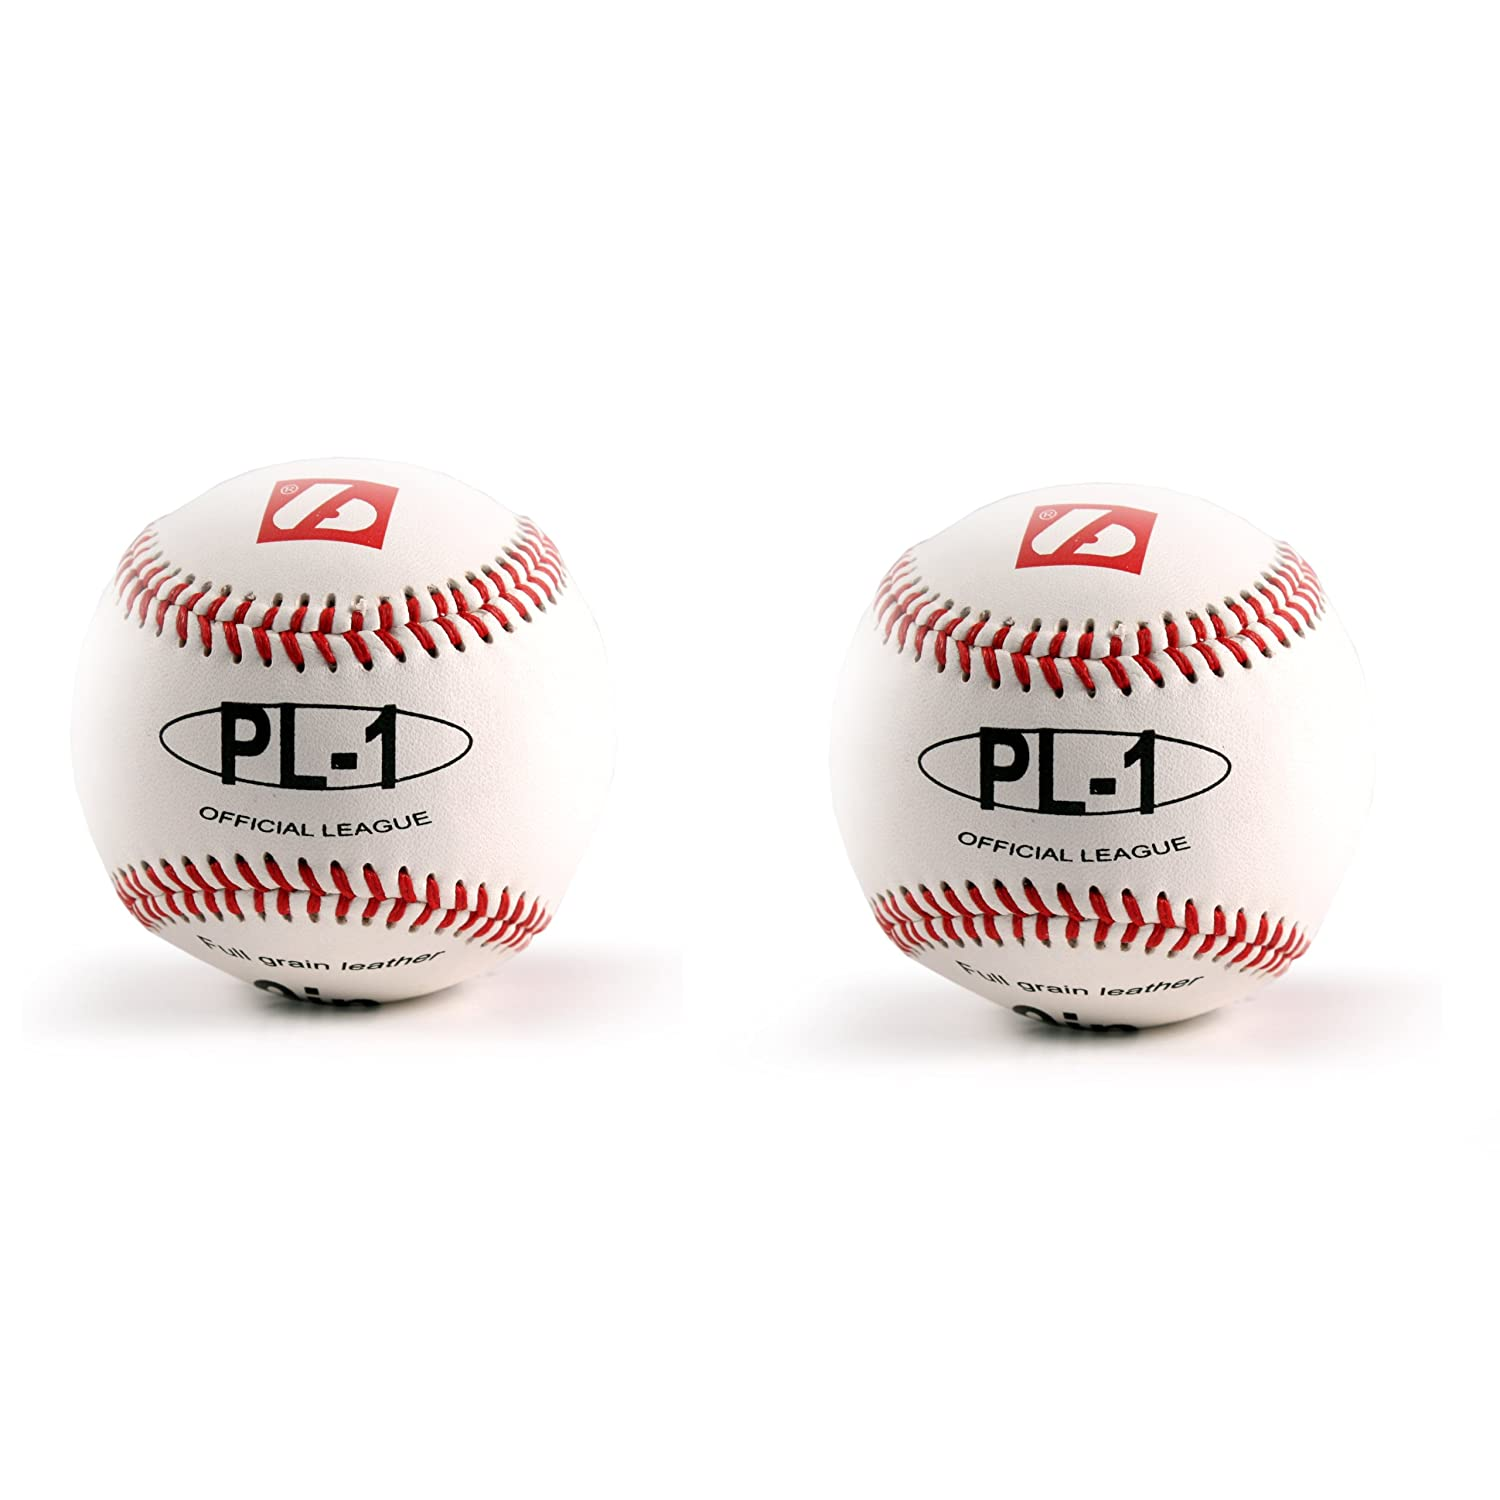 barnett PL-1 Elite match baseball ball size 9', 2 pieces, white